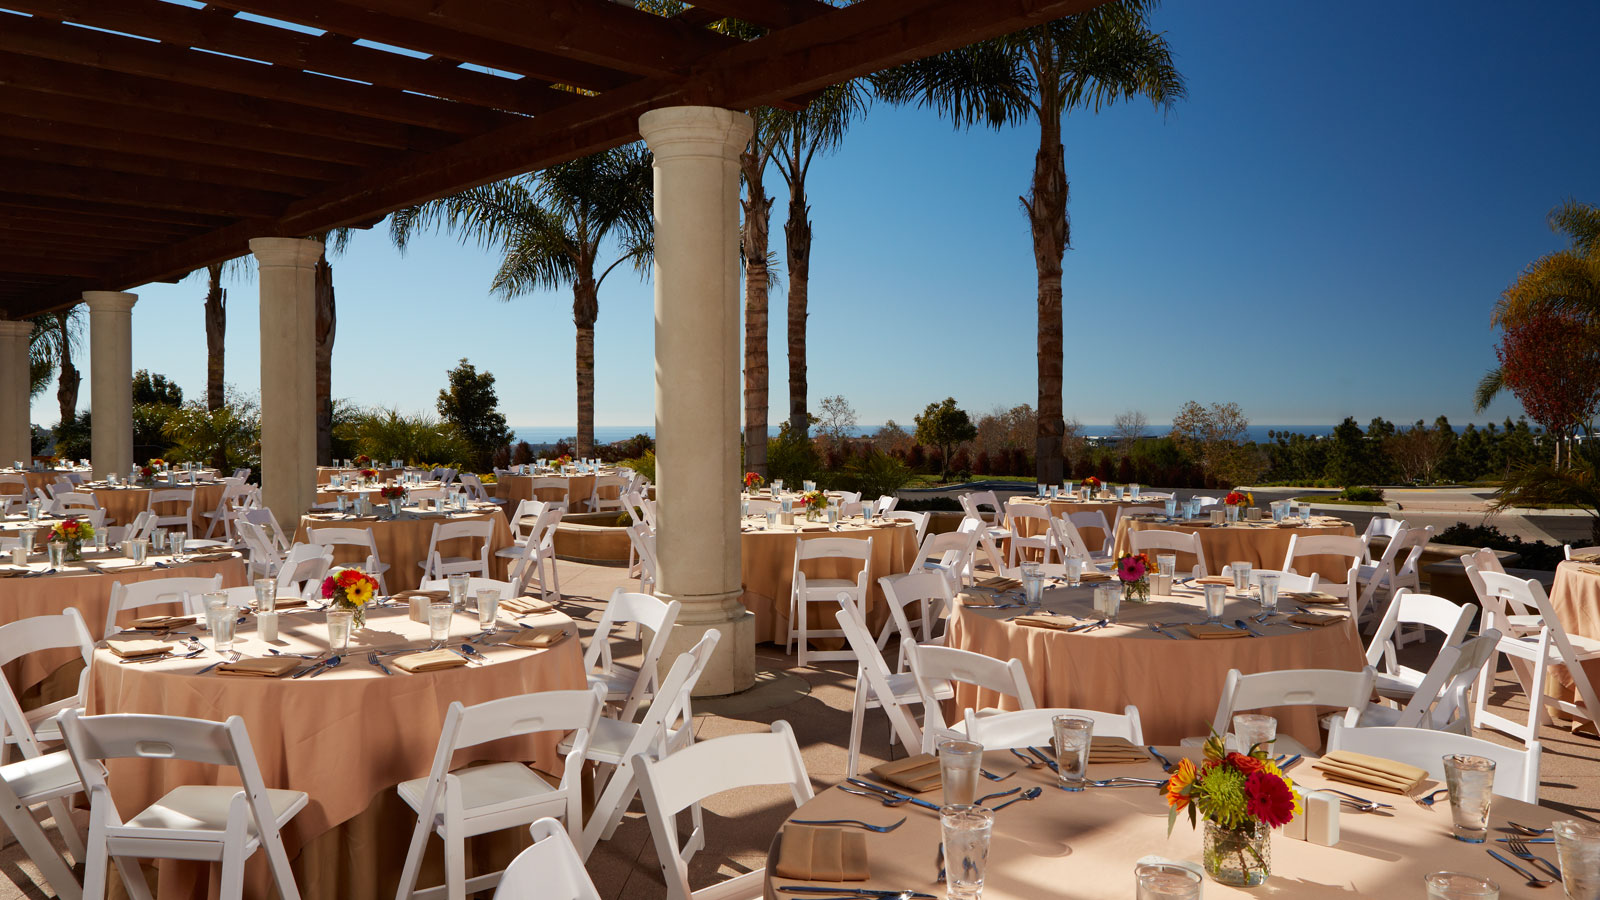 Sheraton Carlsbad Resort & Spa  - San Diego Meeting Space Outdoor Space